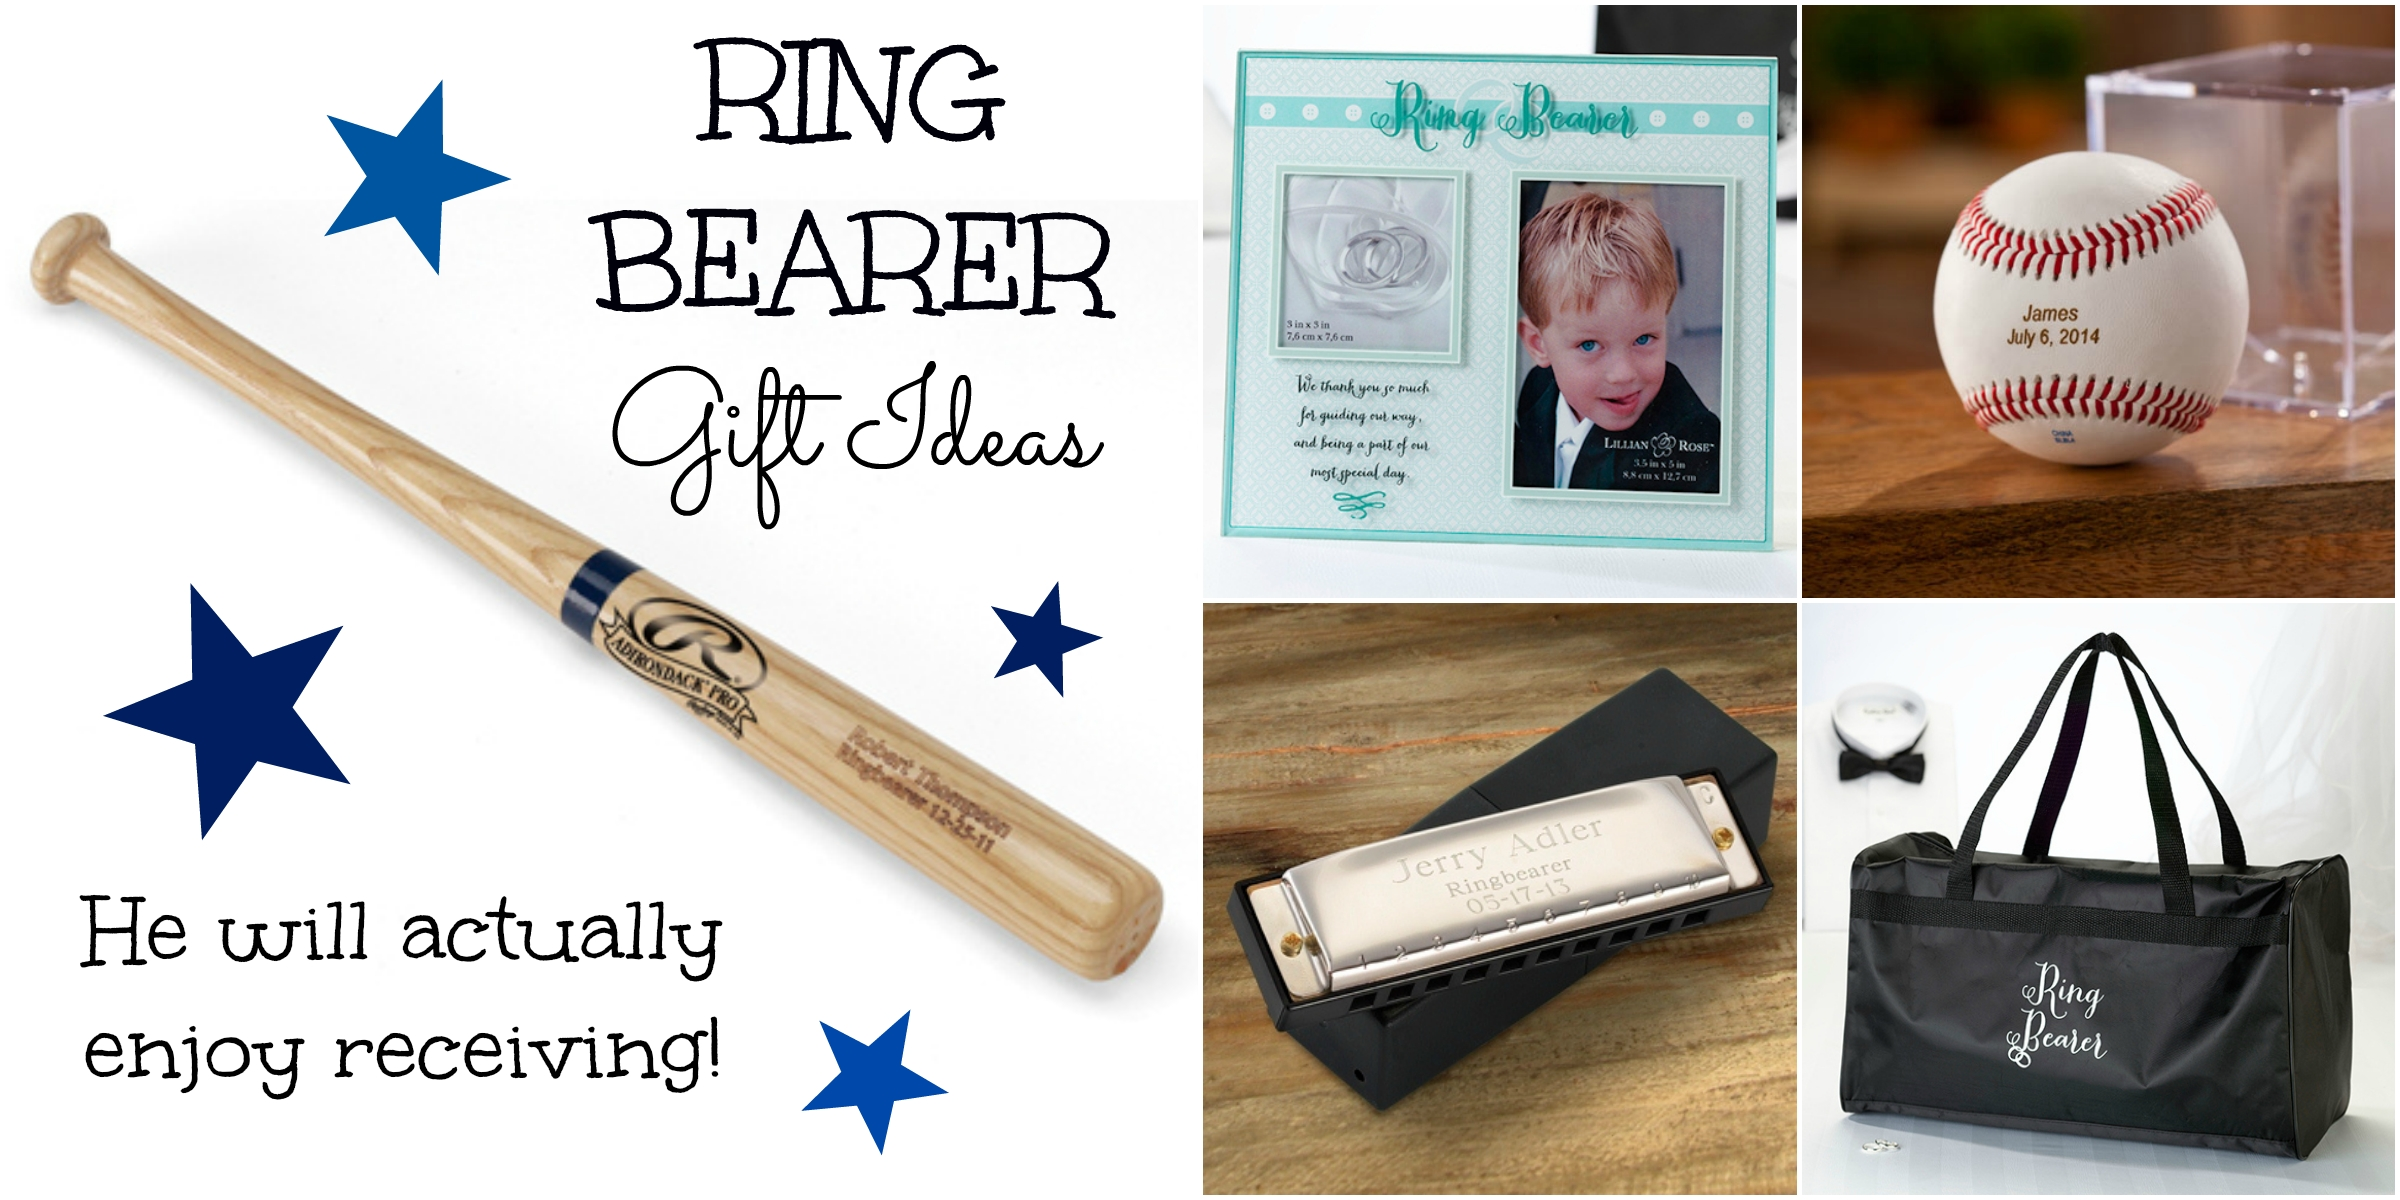 ring bearer gift ideas | wedding favors unlimited bridal planning